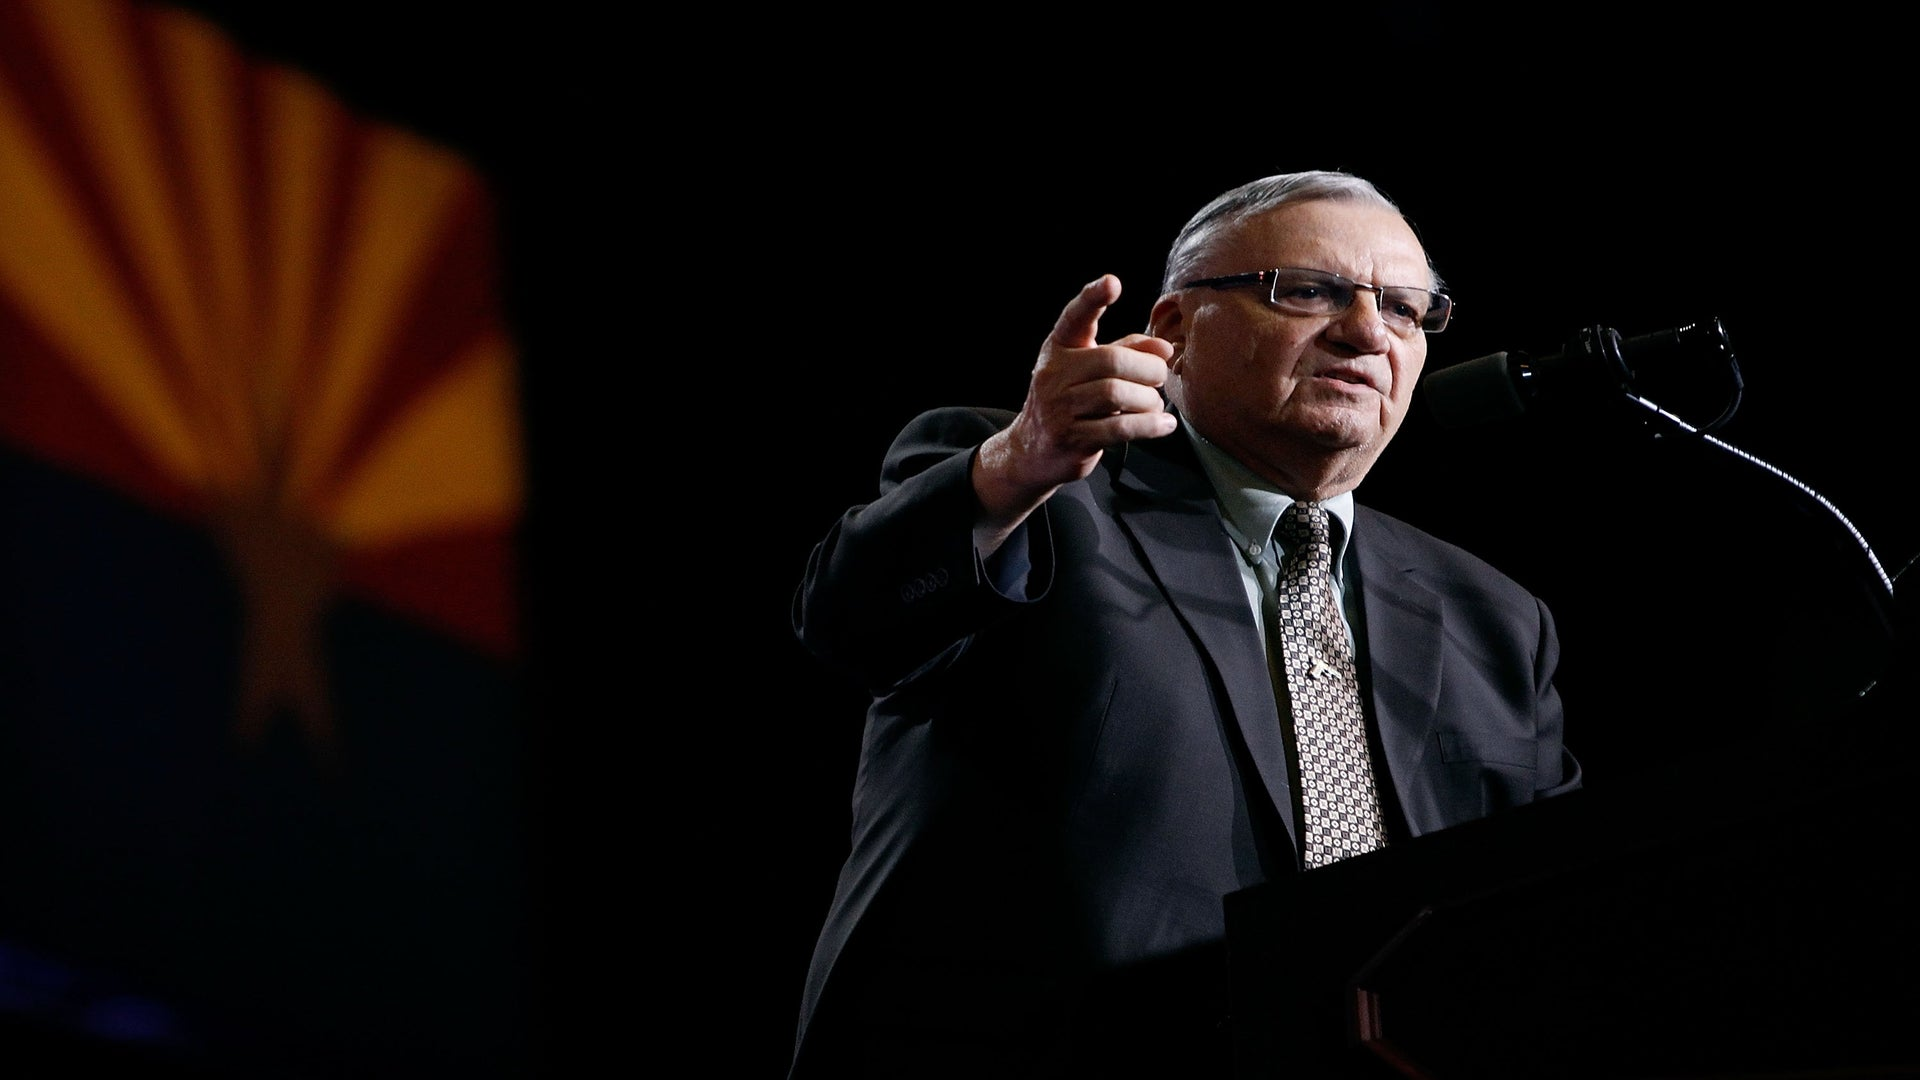 Former Sheriff Joe Arpaio Convicted For Refusing to Stop Immigrant-Targeting Traffic Patrols